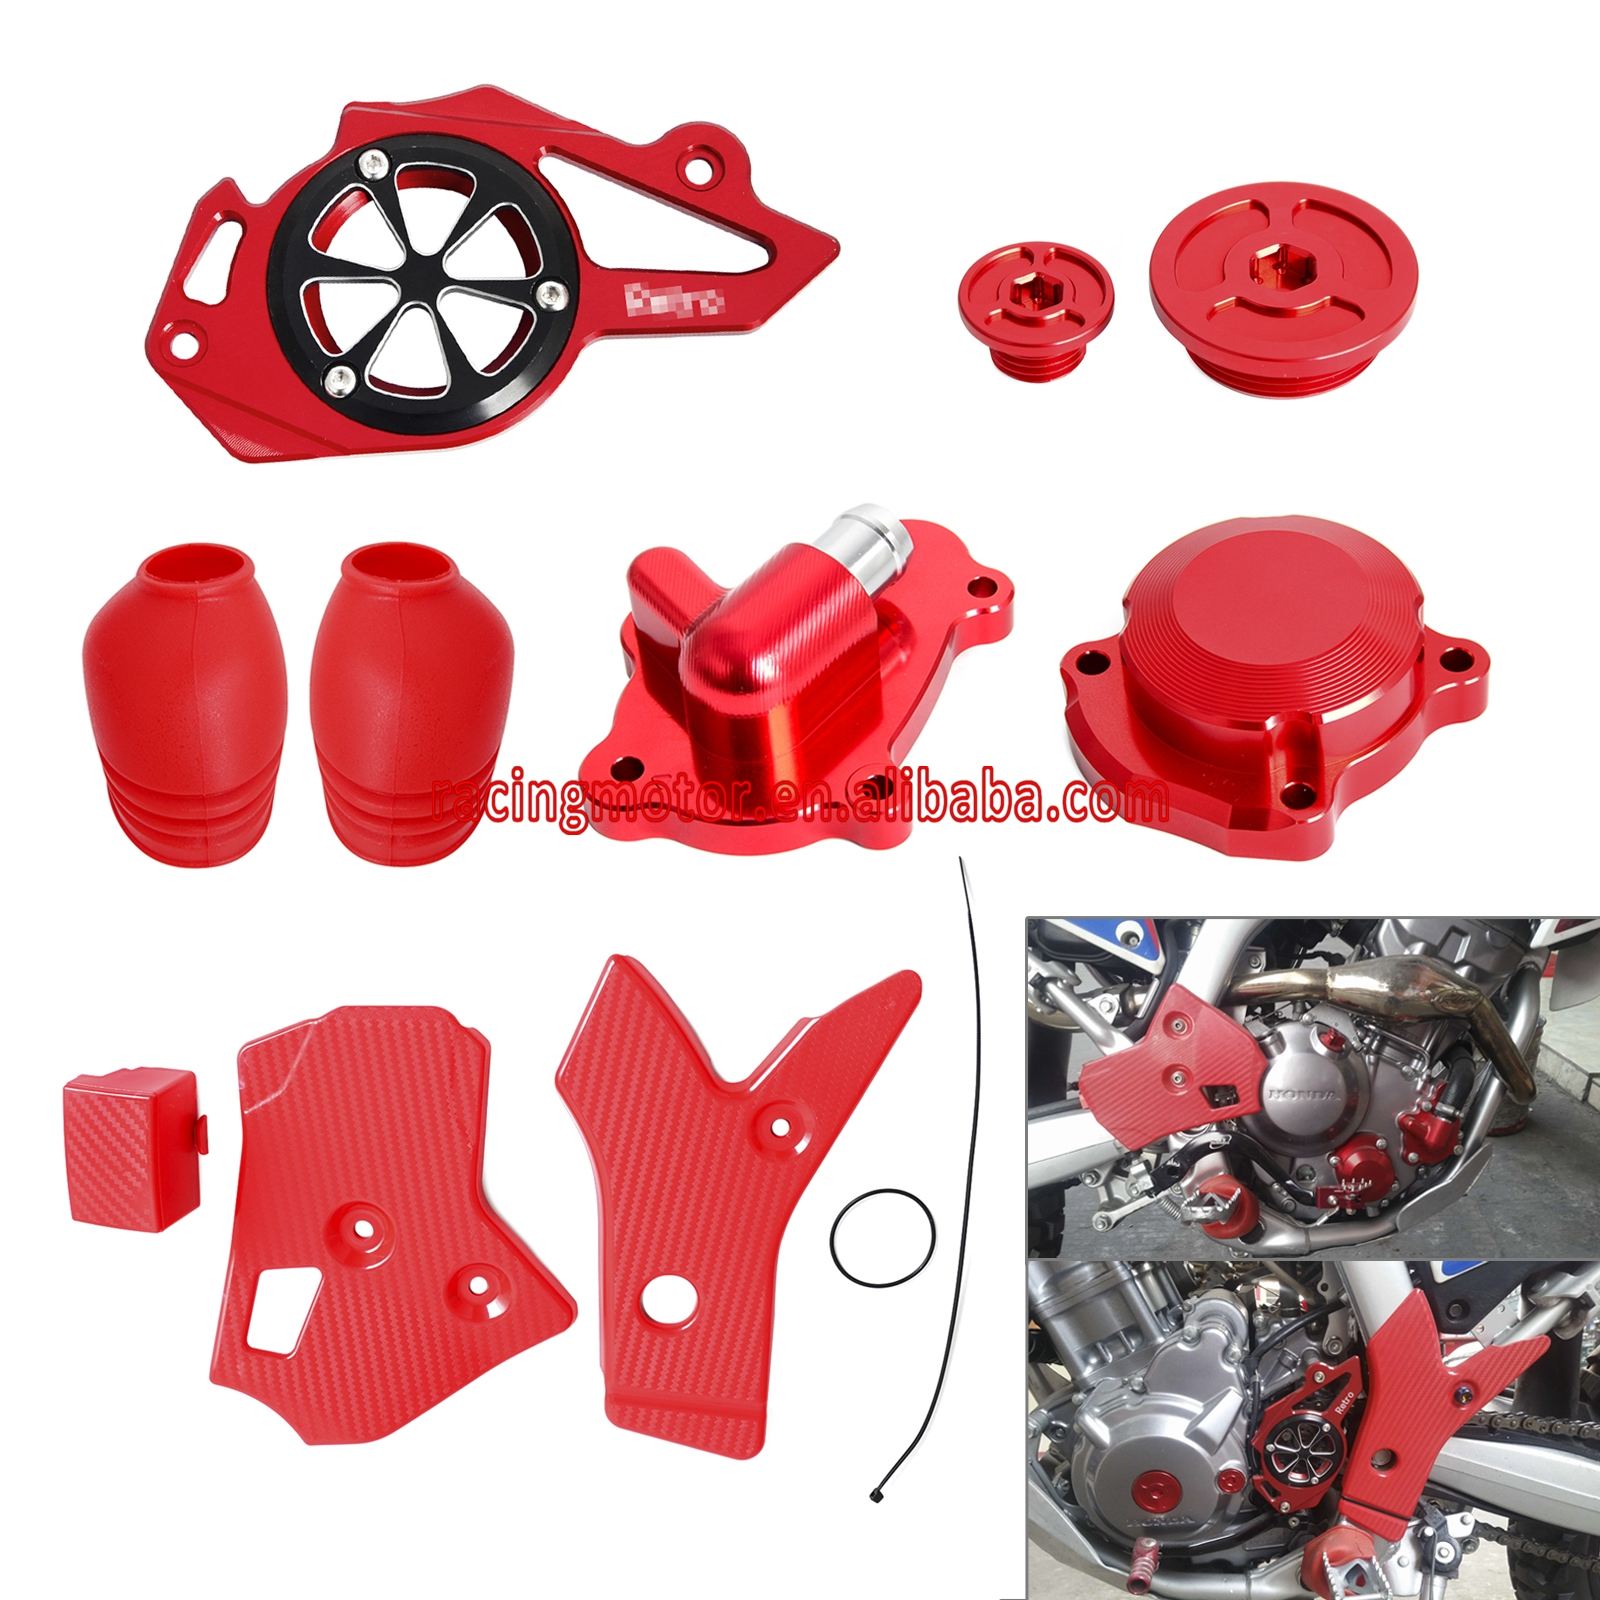 Modification Parts Water Pump Cover & Protect Cover & Oil Filter Cover & Others Bling Kit For Honda CRF250L CRF250M 2012-2015 yanmar parts the water pump thermostat type with reference 4tne88